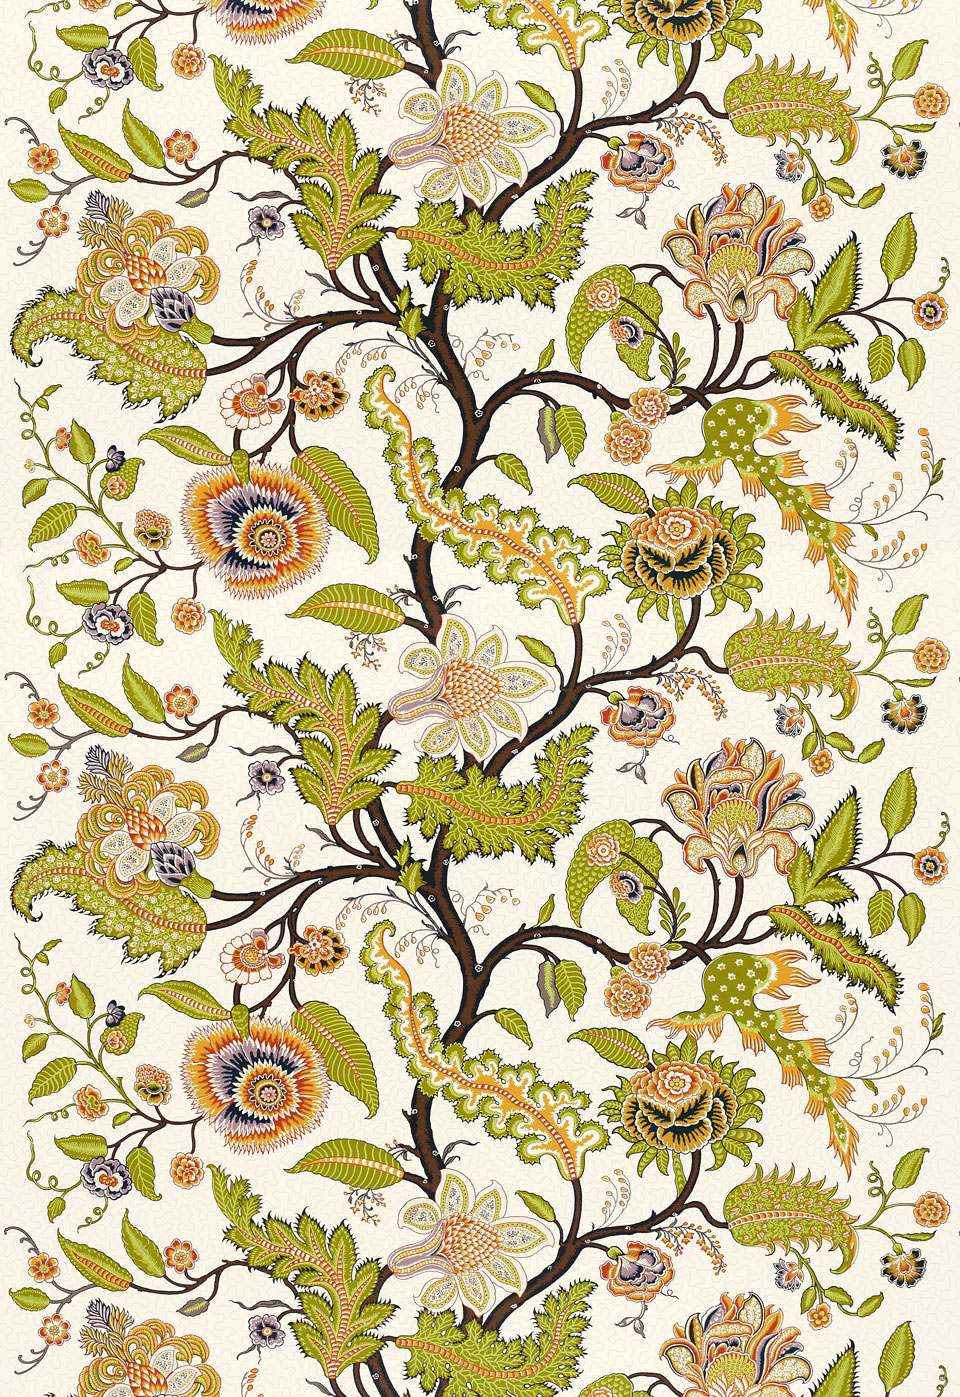 wallpaper trends 2015 loretta j willis designer